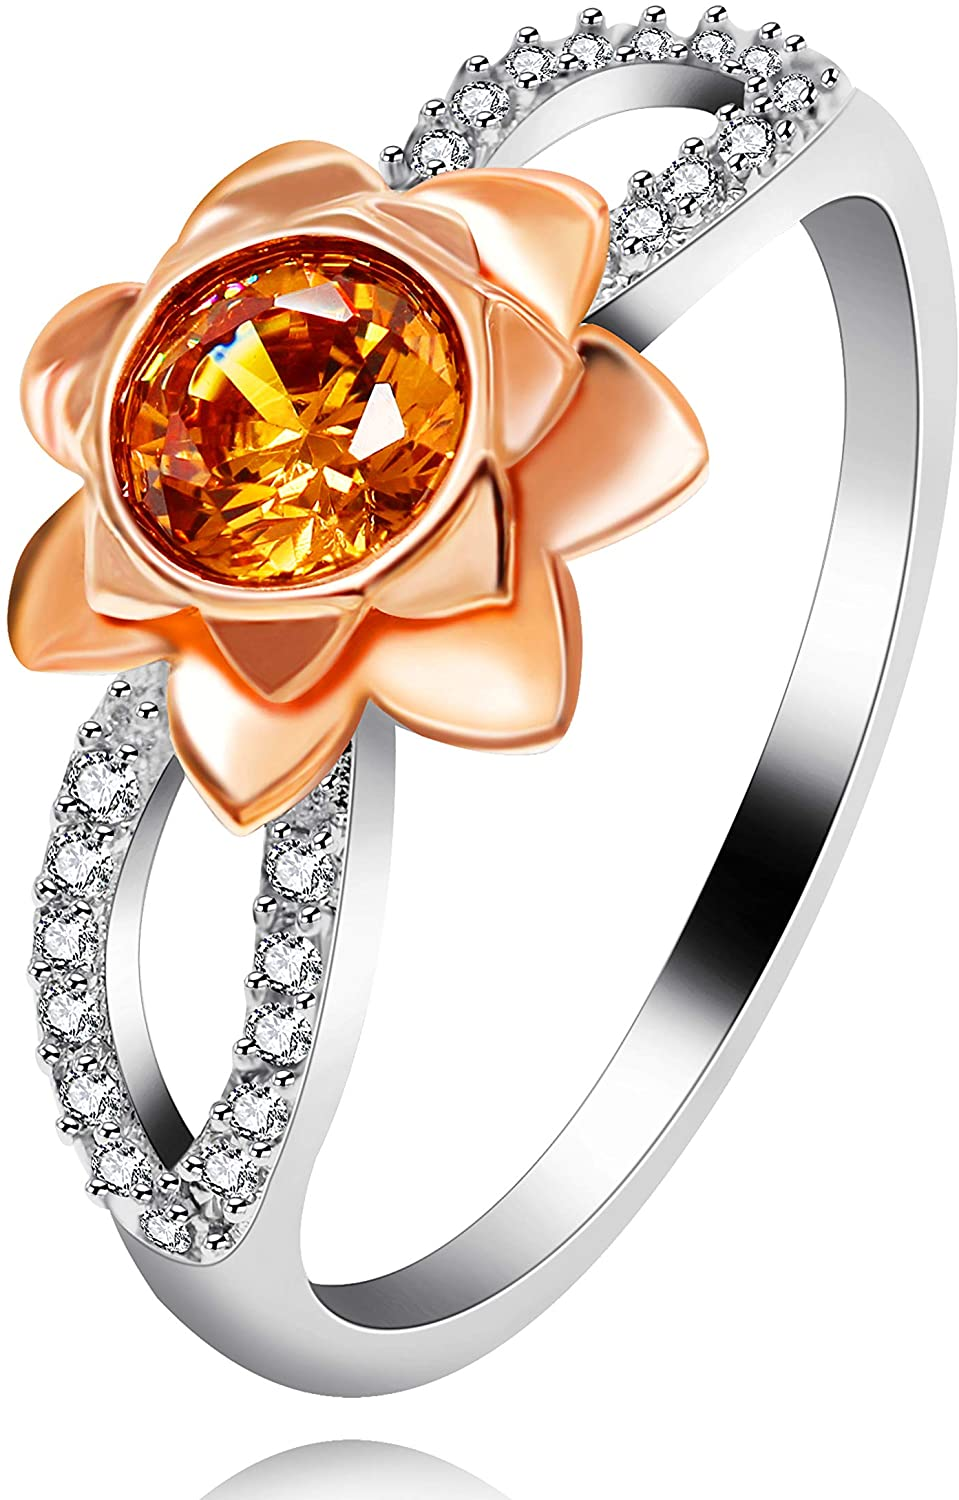 14K Rose Flower Ring Two Tones Infinity Floral Wedding Ring with Round Cut Simulated Orange Diamond Y812